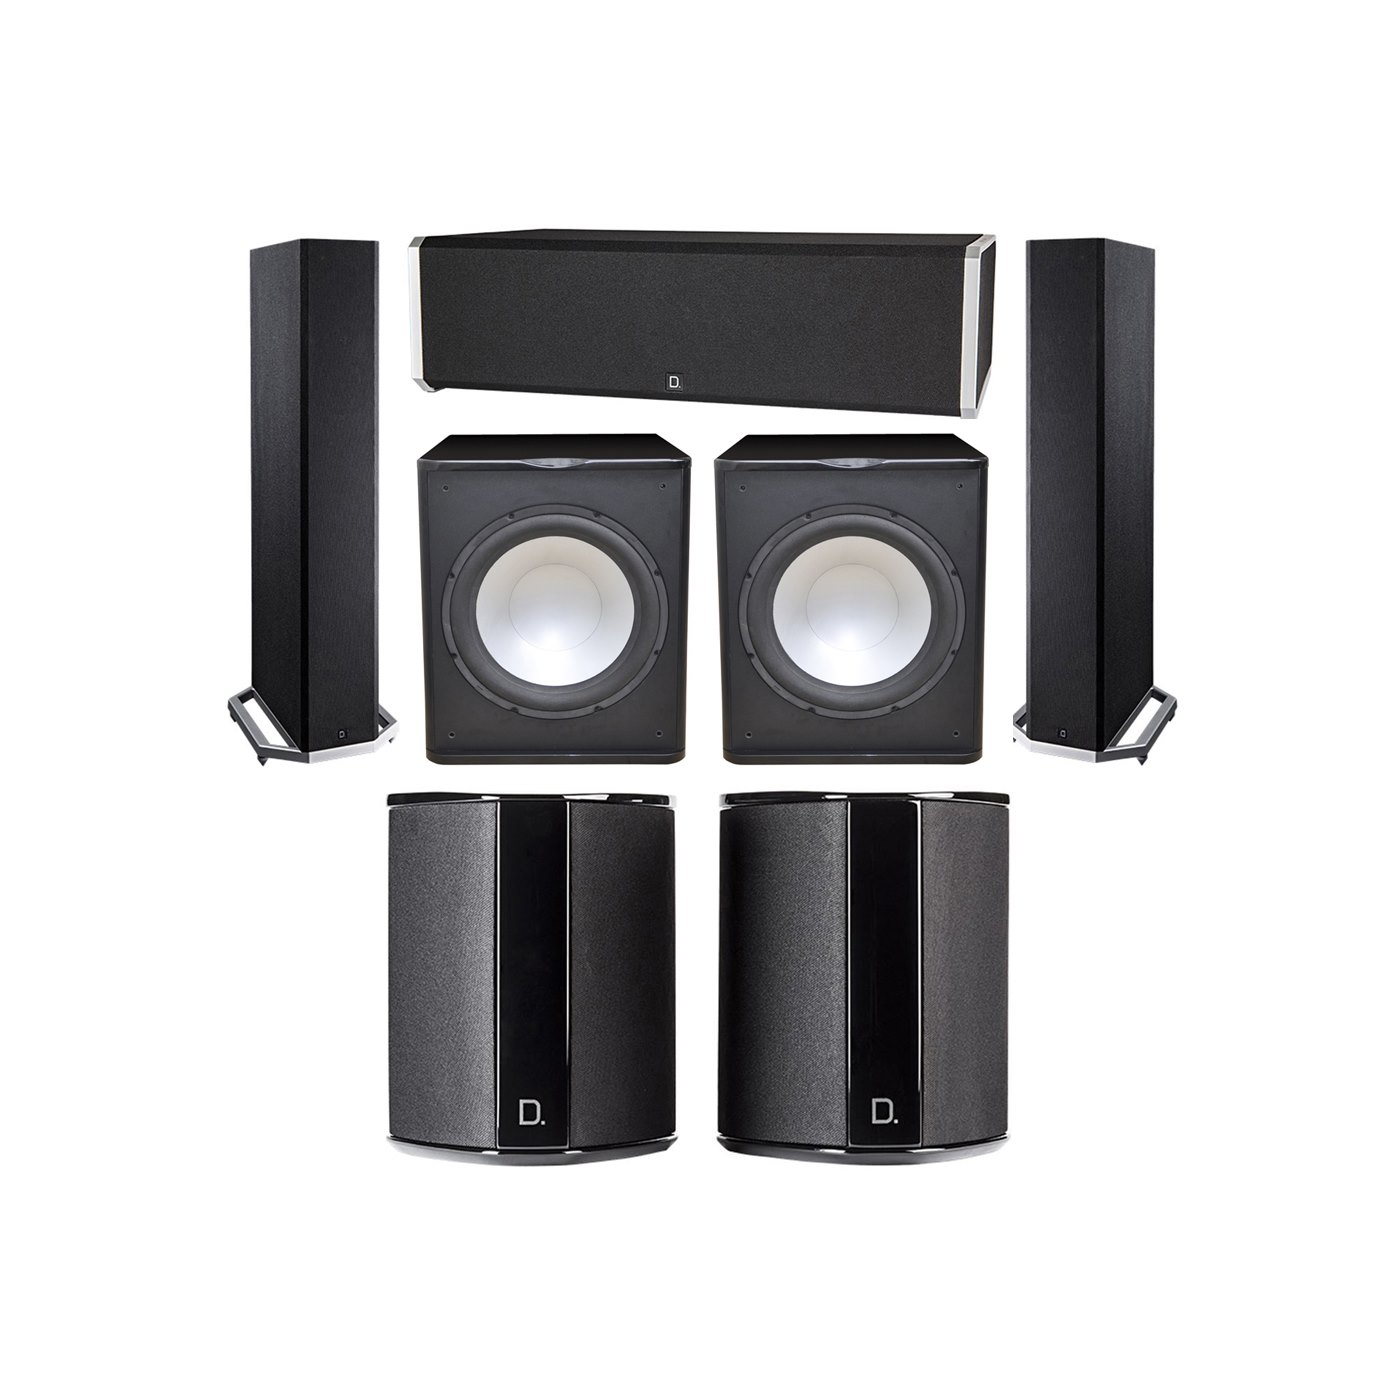 Definitive Technology 5.2 System with 2 BP9020 Tower Speakers, 1 CS9040 Center Channel Speaker, 2 SR9040 Surround Speaker, 2 Premier Acoustic PA-150 Subwoofer